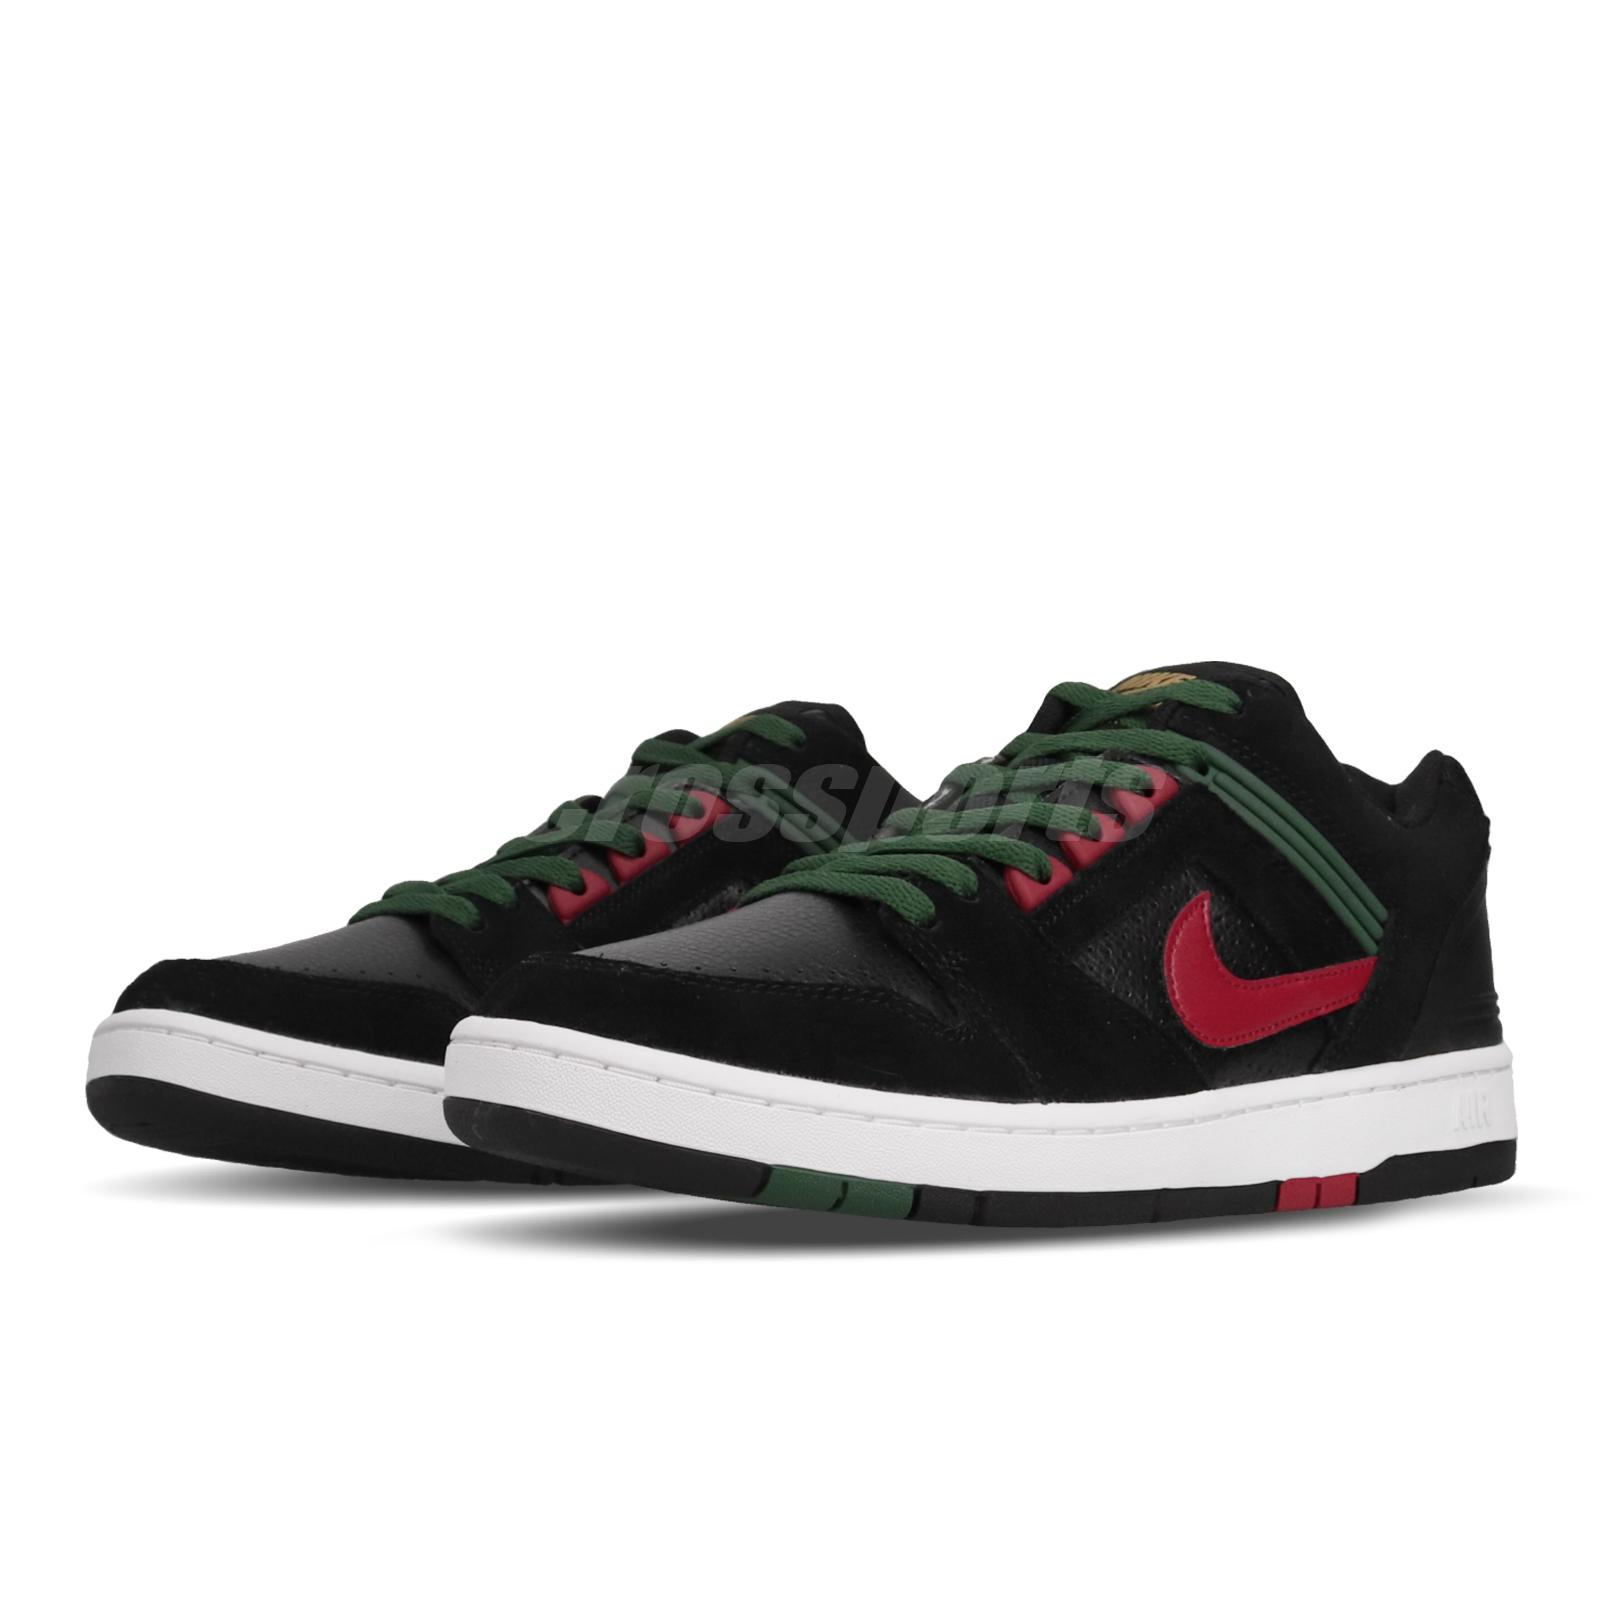 Air about Nike Low Skateboarding 002 Green Red Shoes Details Mens II SB AO0300 Force Black hQstrdC